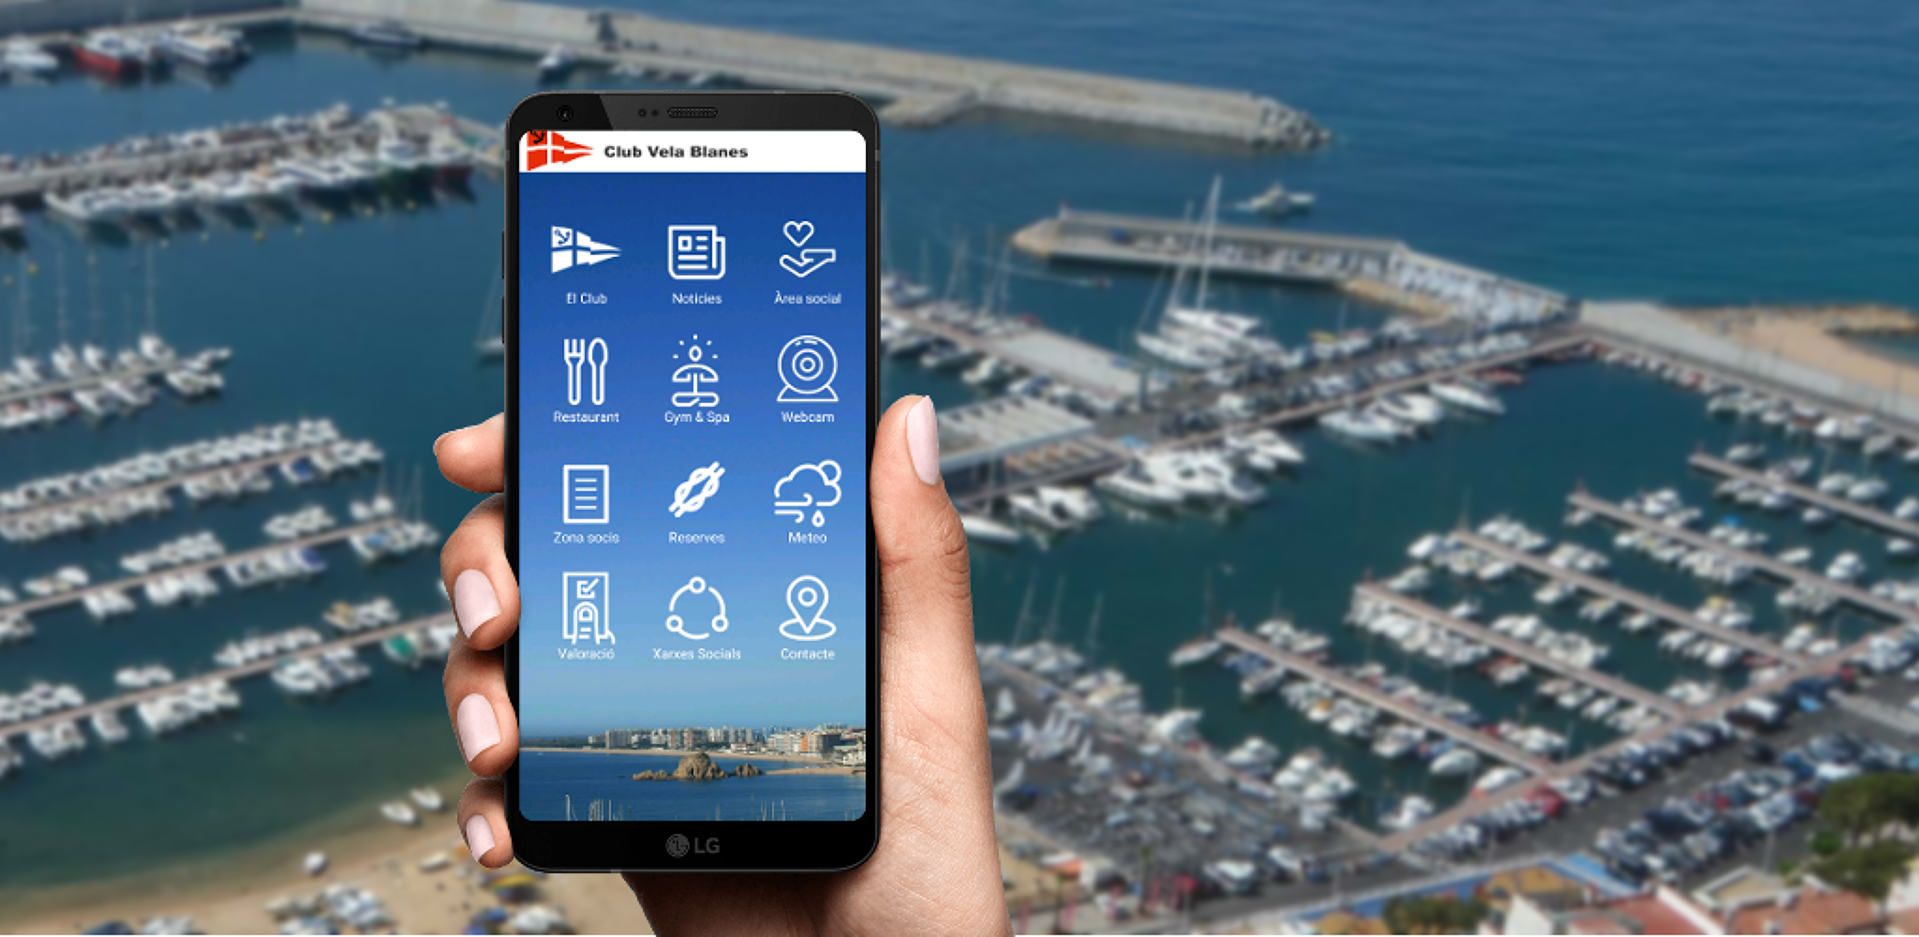 Mobile app for sailing club